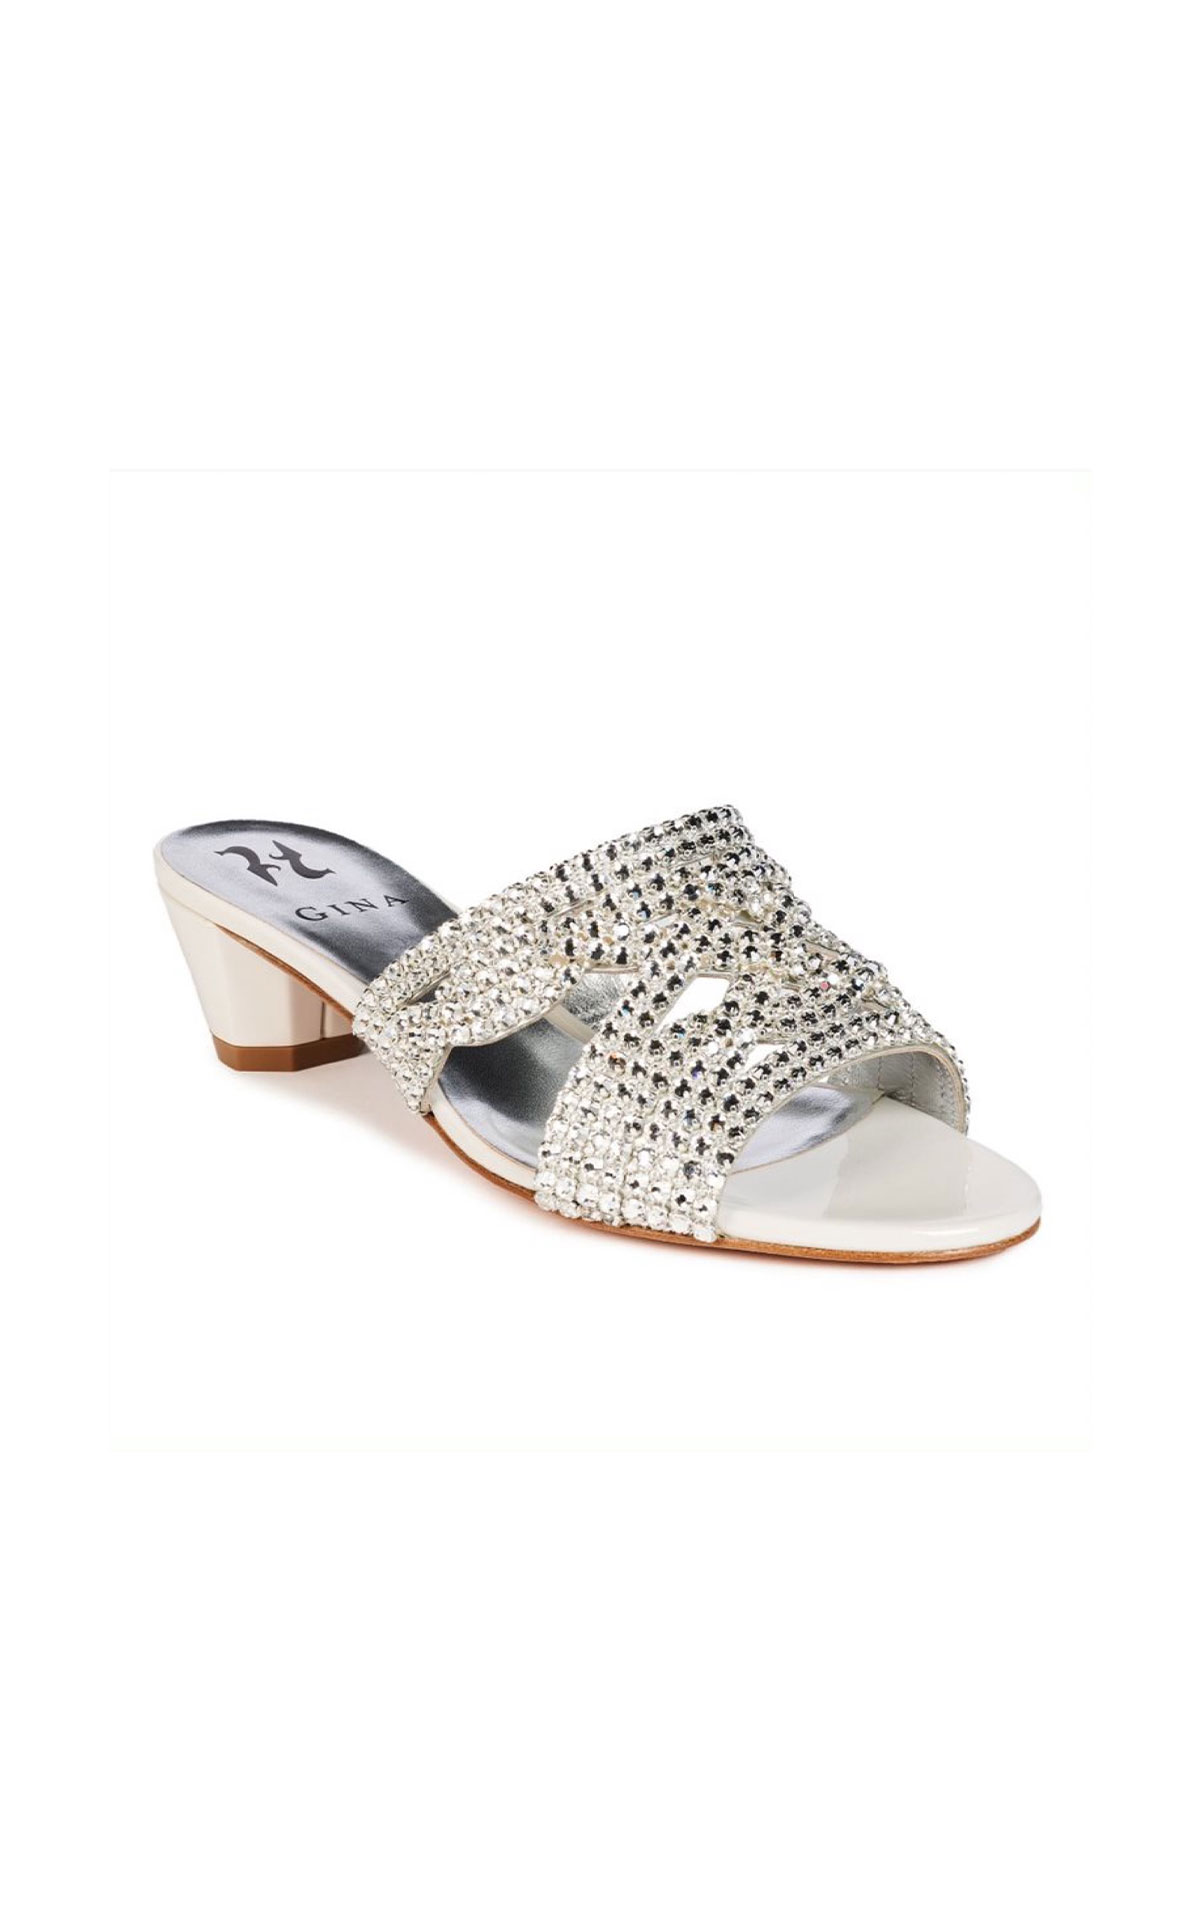 Gina White and silver slipper from Bicester Village